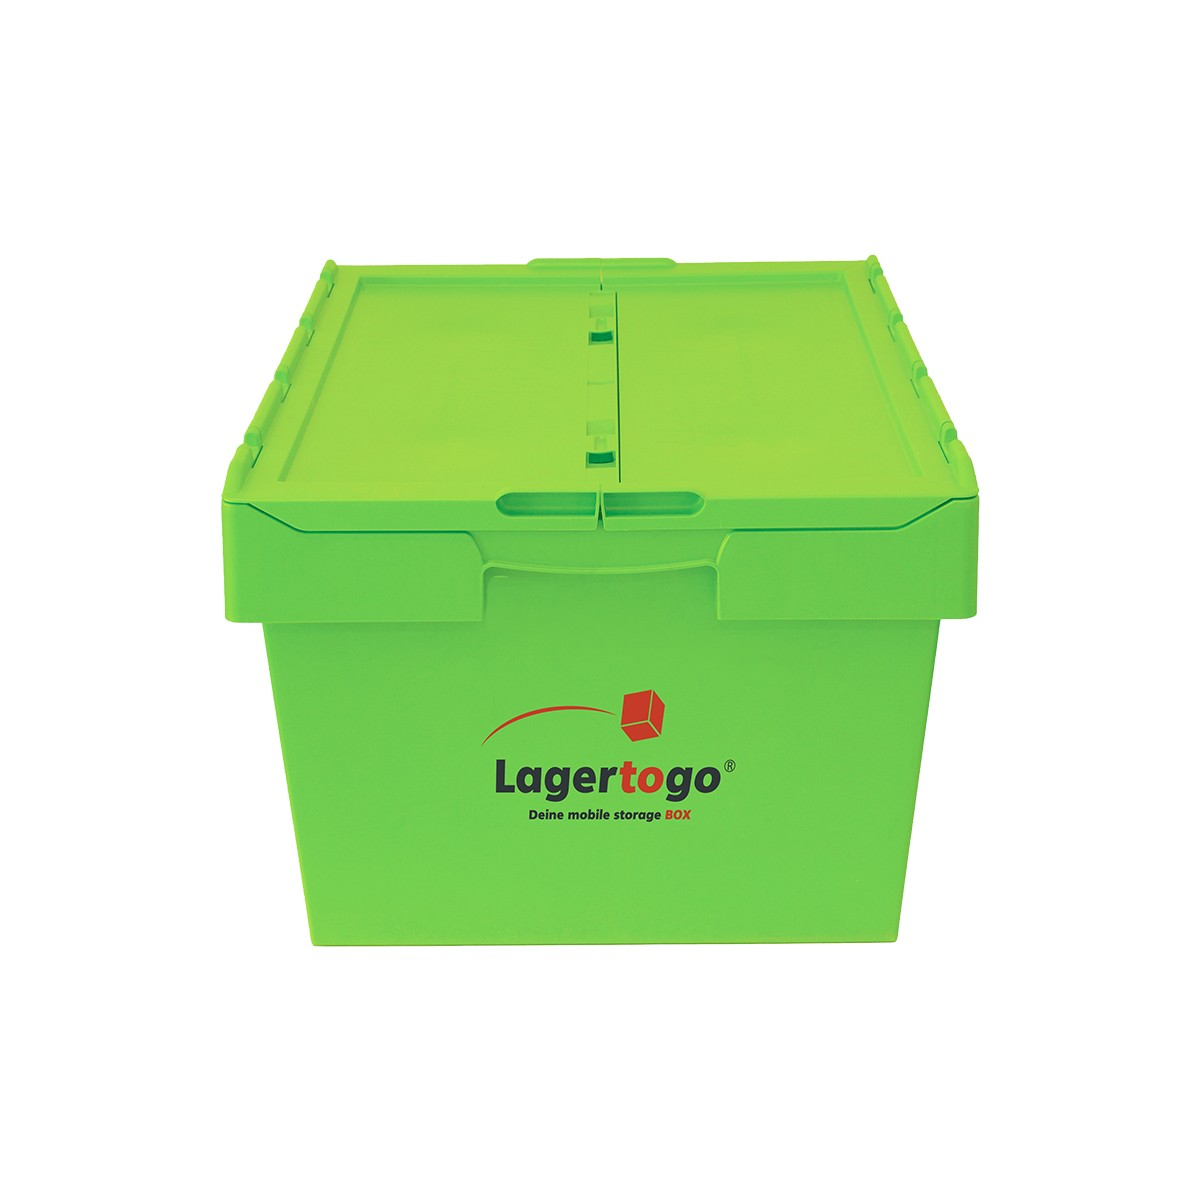 Lagerboxen Kunststoff Lagerbox Einlagern Self Storage On Demand Lagertogo